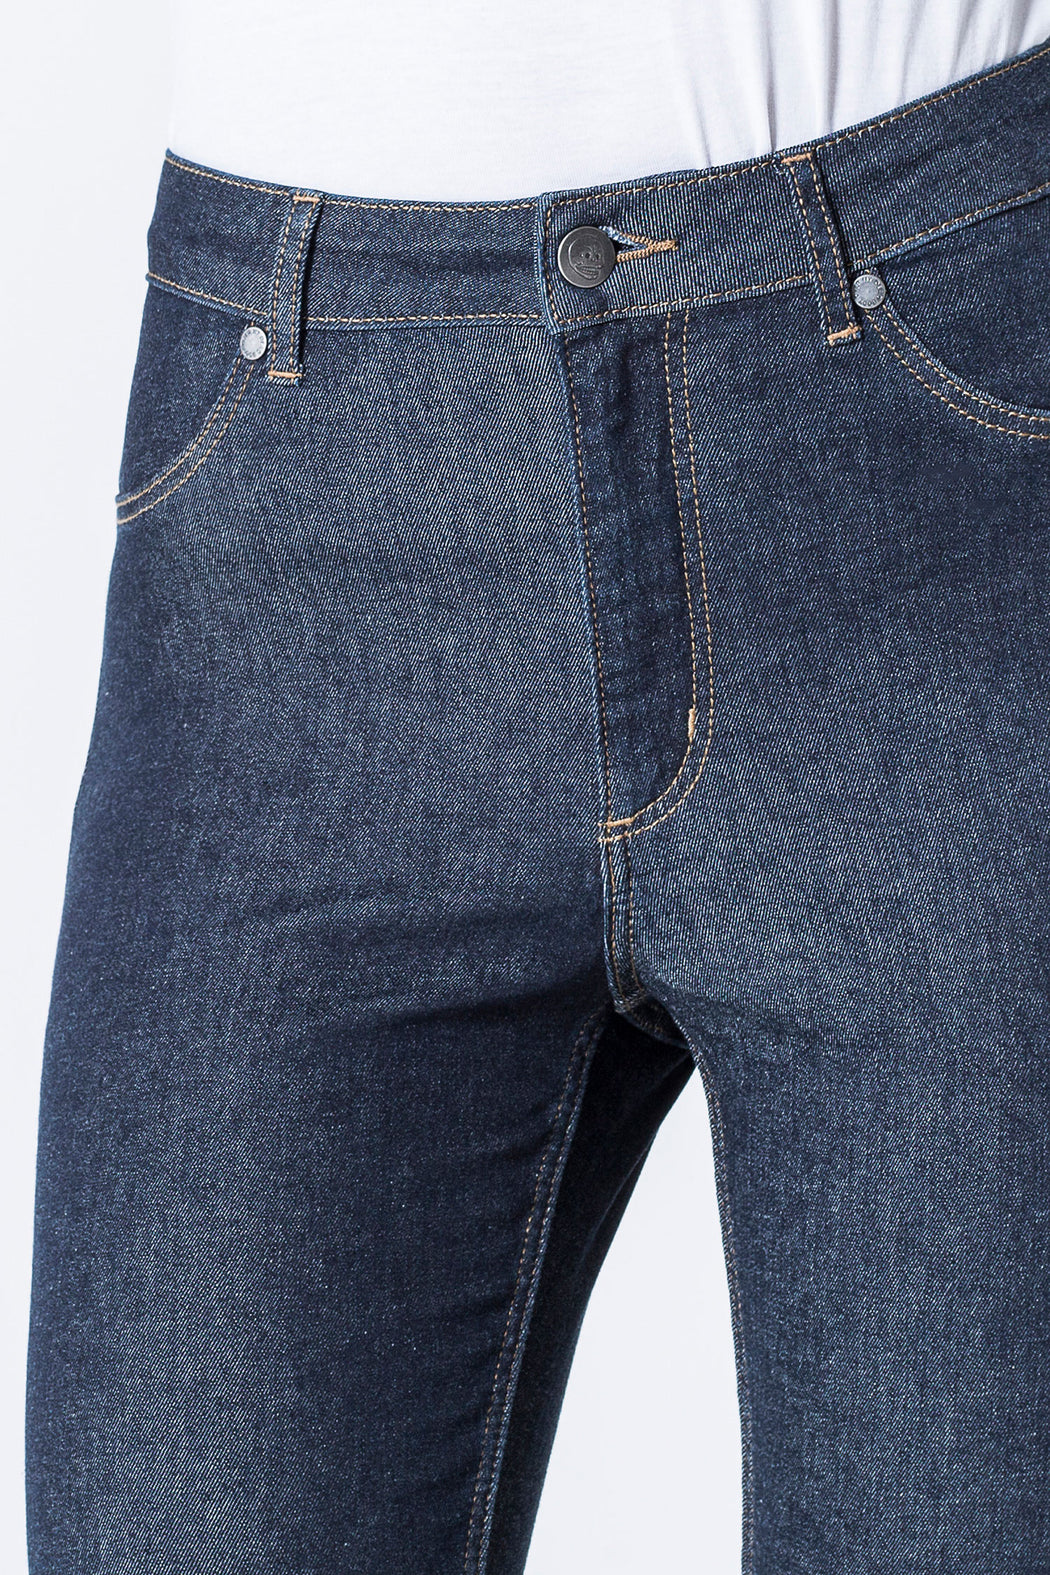 Organic HIgh Spray Jeans in Indigo Rinse